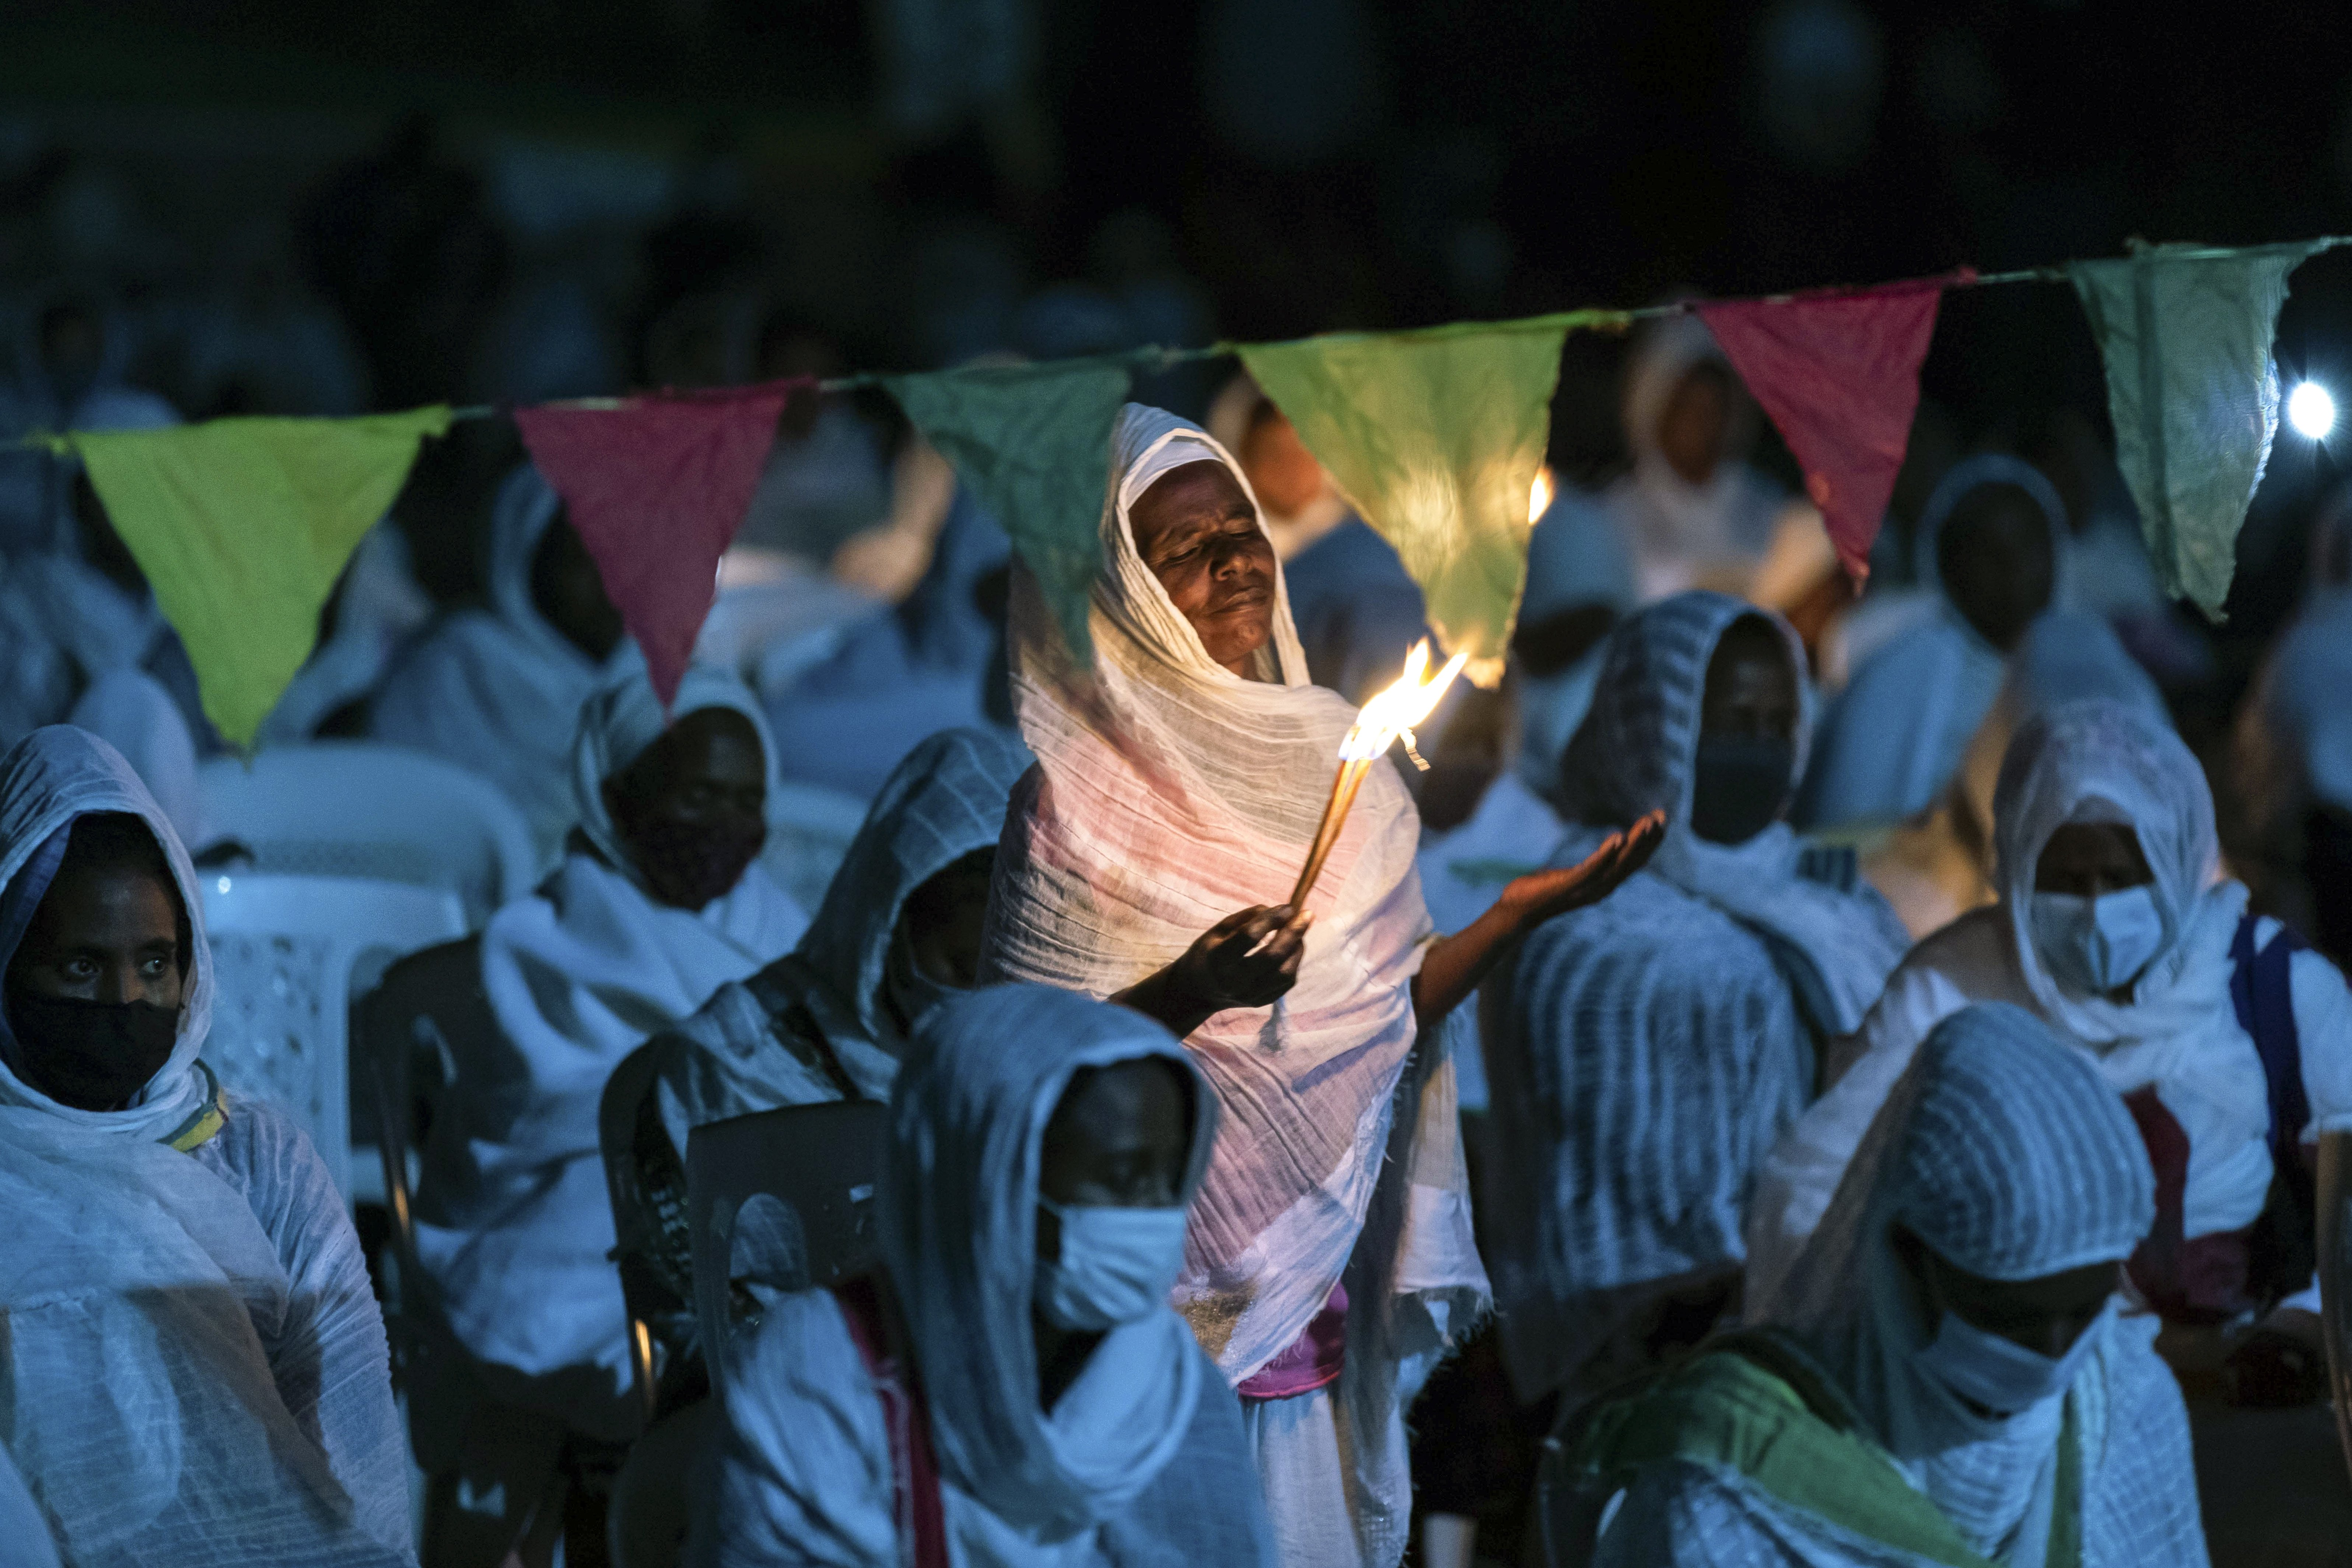 """Ethiopian Orthodox Christians light candles and pray for peace during a church service at the Medhane Alem Cathedral in the Bole Medhanealem area of the capital. Ethiopia's powerful Tigray region asserts that fighter jets have bombed locations around its capital, Mekele, aiming to force the region """"into submission,"""" while Ethiopia's army says it has been forced into an """"unexpected and aimless war,"""" Addis Ababa, Ethiopia, Nov. 5, 2020 (AP Photo/Mulugeta Ayene)"""